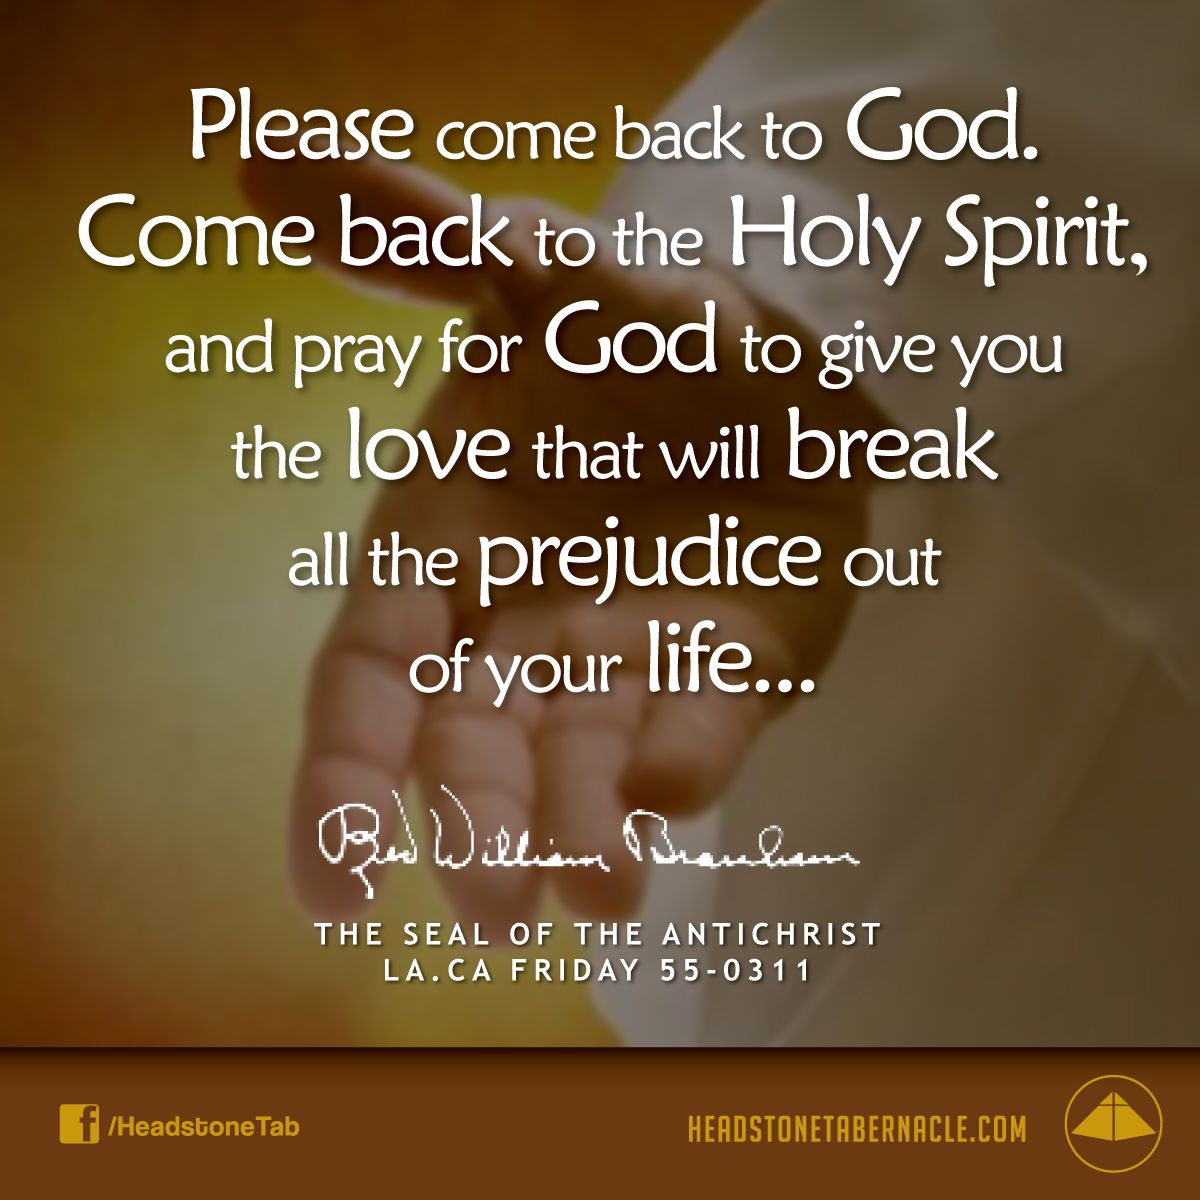 Please come back to God. Come back to the Holy Spirit, and